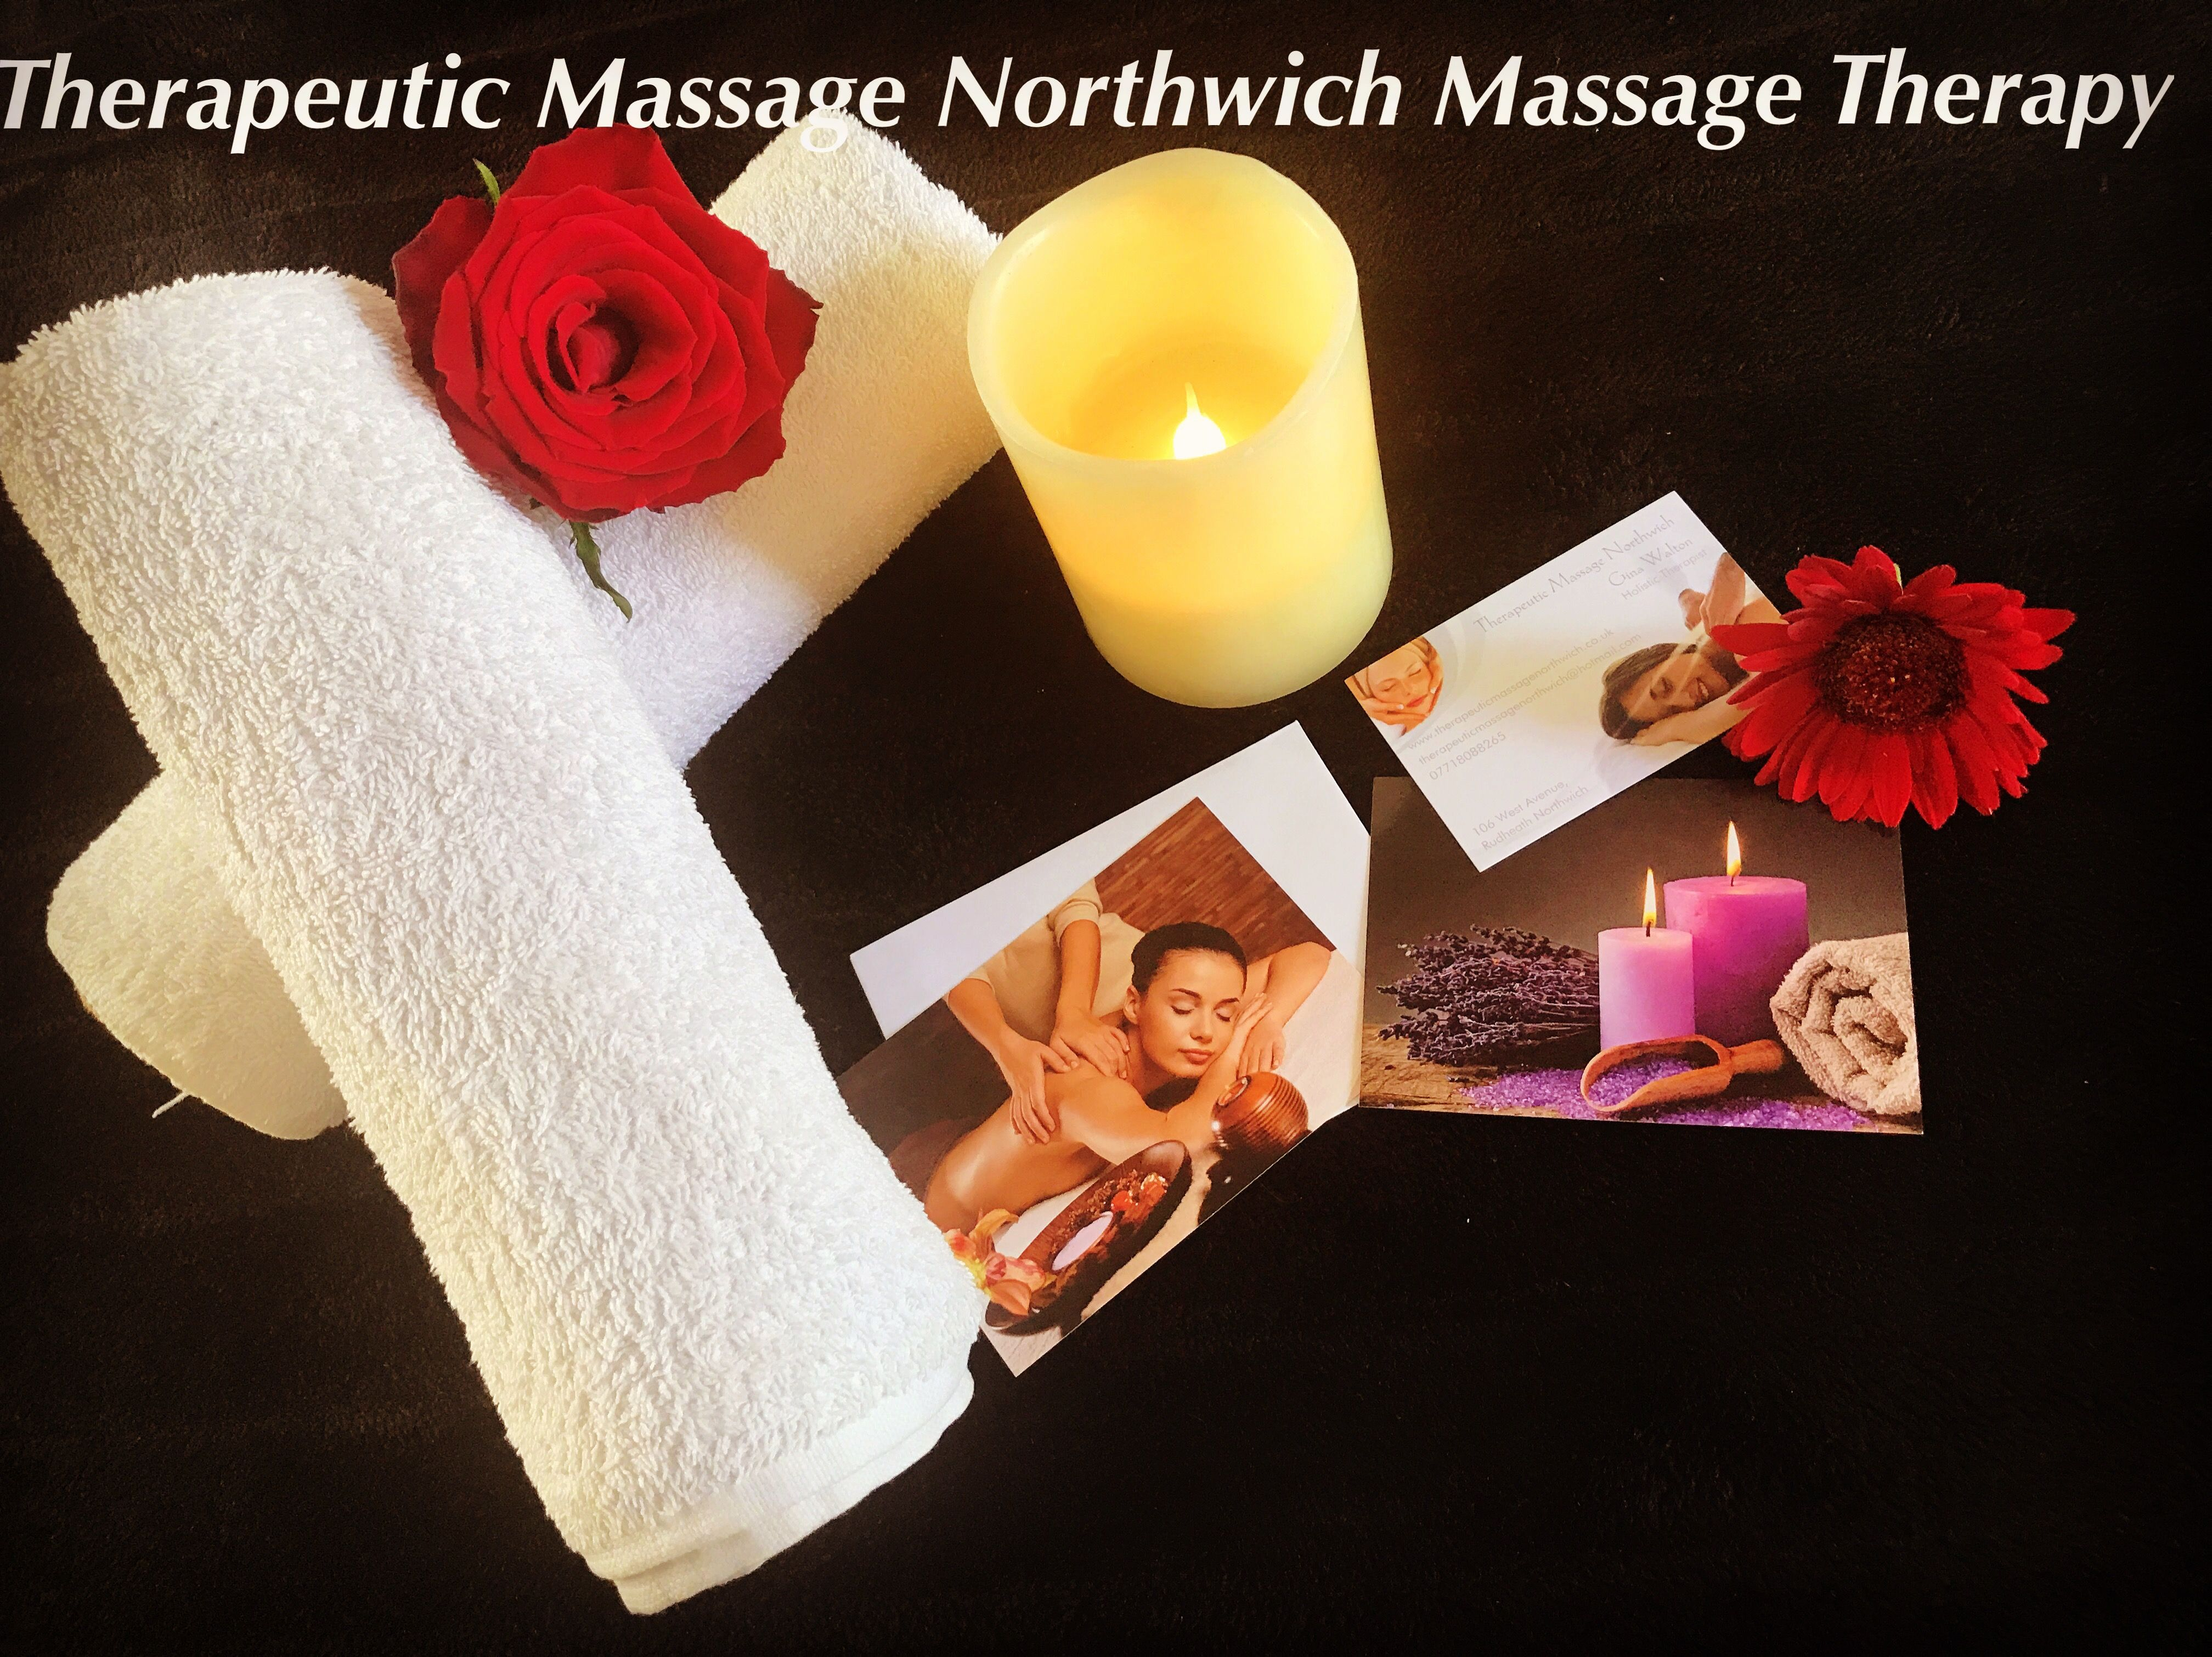 Massage therapy therapeutic massage northwich appointments